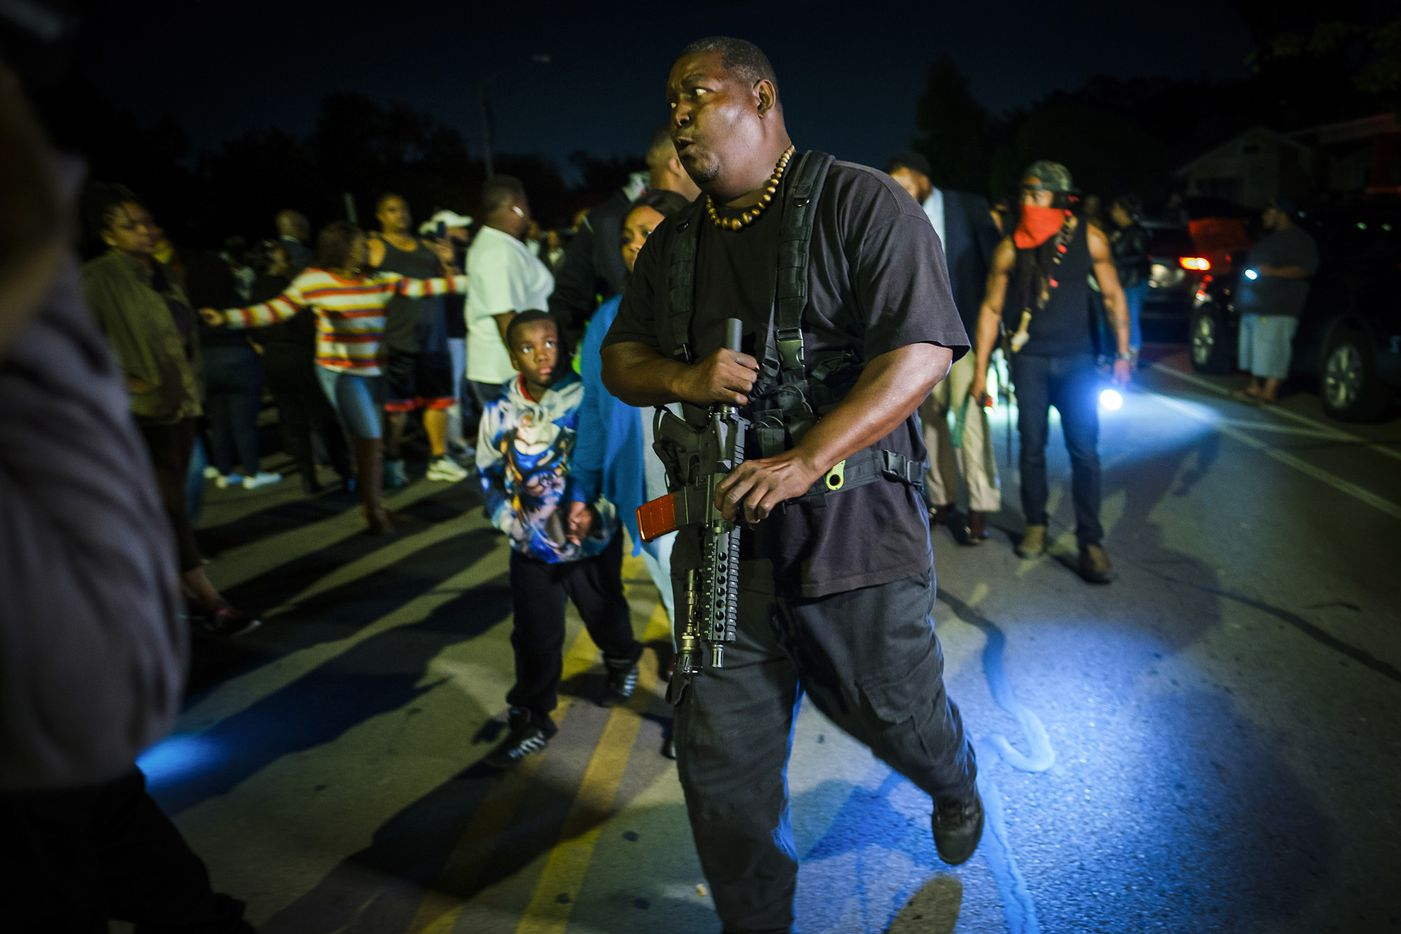 An armed man escort members of the victimÕs family from a community vigil for Atatiana Jefferson on Sunday, Oct. 13, 2019, in Fort Worth.